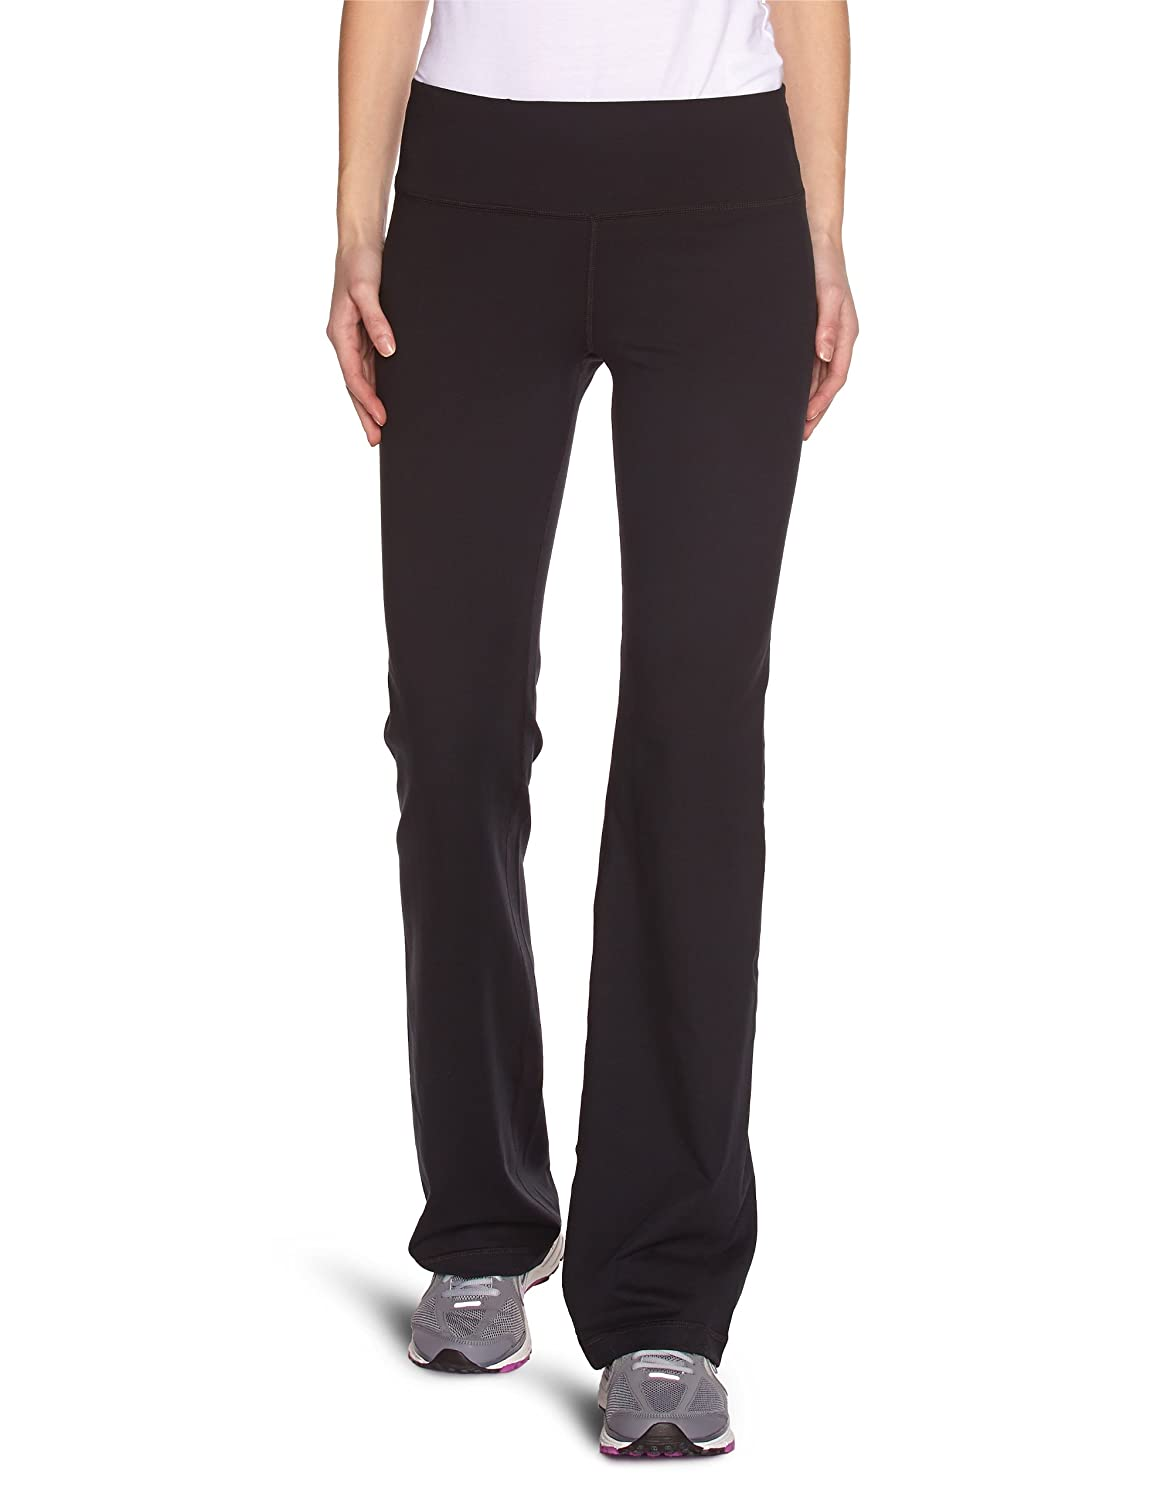 Under Armour Women's Perfect Pant - 33.5', Black (011)/Metallic Pewter, X-Small Under Armour Apparel 1230000 15IM1230000_11-XS